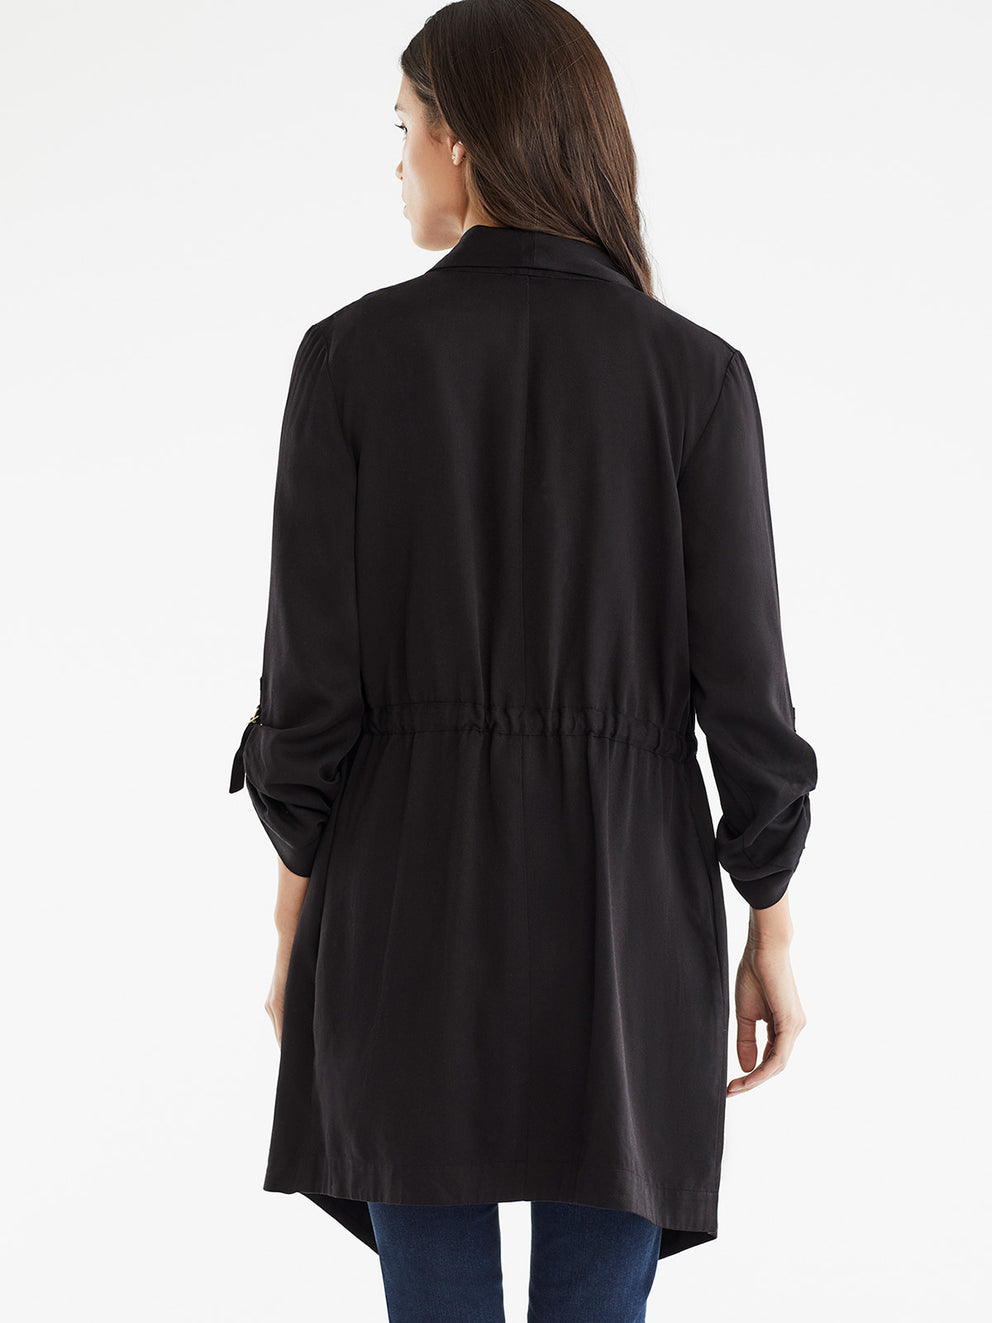 The Jones New York Draped Open Front Jacket in color Black - Image Position 3